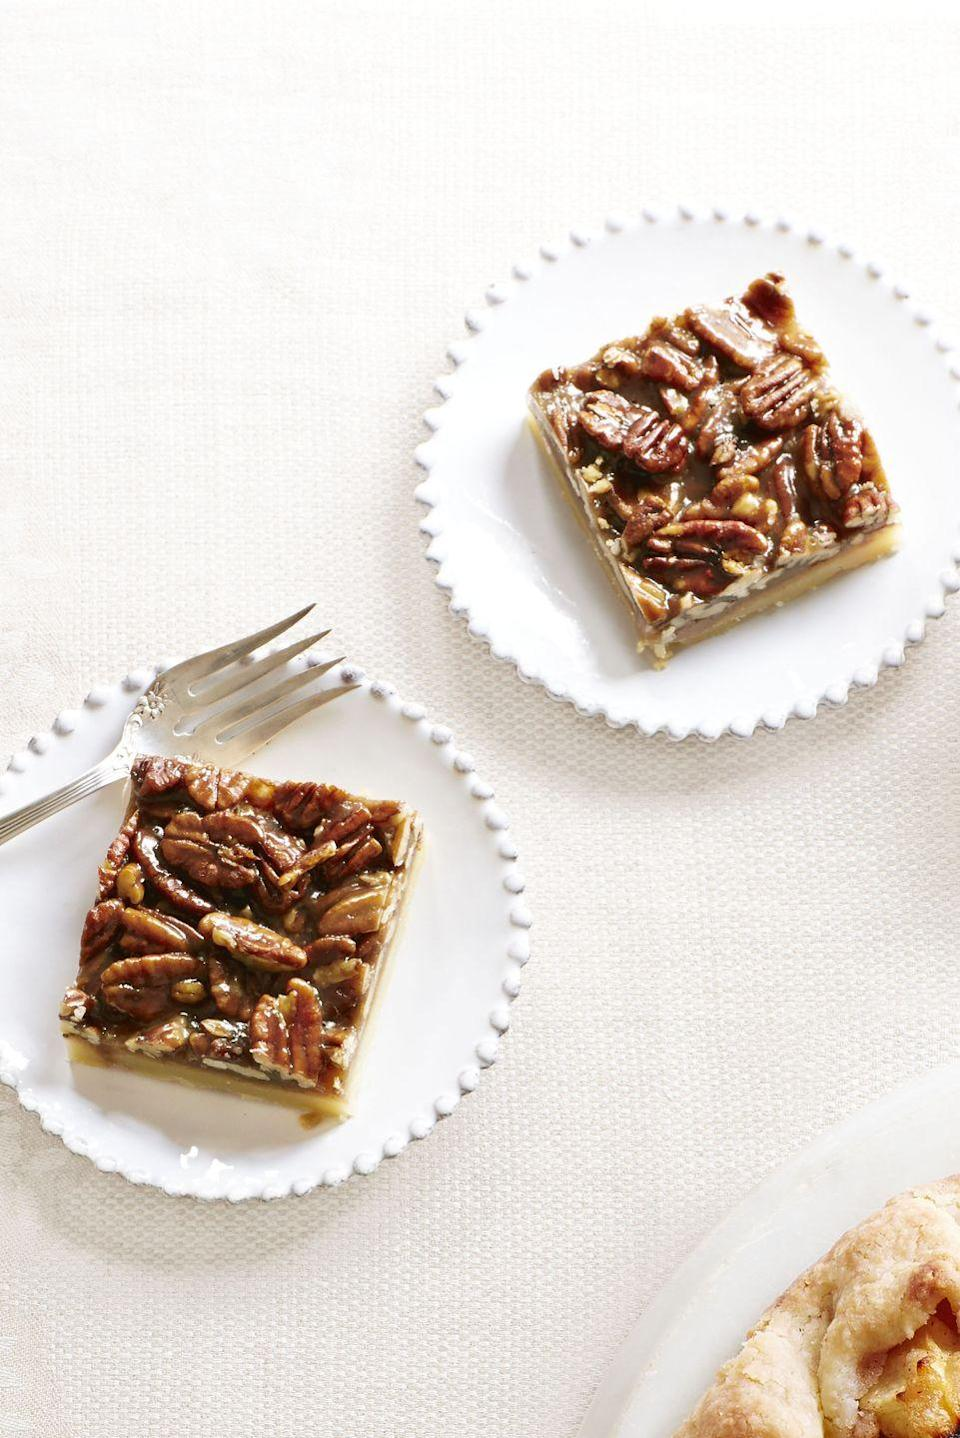 "<p>Pecan pie has a whole new look — but the same quintessential (and delicious) flavor. </p><p><em><a href=""https://www.goodhousekeeping.com/food-recipes/a14469/pecan-squares-recipe-ghk1113/"" rel=""nofollow noopener"" target=""_blank"" data-ylk=""slk:Get the recipe for Pecan Squares »"" class=""link rapid-noclick-resp"">Get the recipe for Pecan Squares »</a></em></p><p><strong>RELATED: </strong><a href=""https://www.goodhousekeeping.com/food-recipes/dessert/g3611/best-pecan-pie-recipes/"" rel=""nofollow noopener"" target=""_blank"" data-ylk=""slk:19 Incredibly Delicious Pecan Pie Recipes to Try"" class=""link rapid-noclick-resp"">19 Incredibly Delicious Pecan Pie Recipes to Try</a></p>"